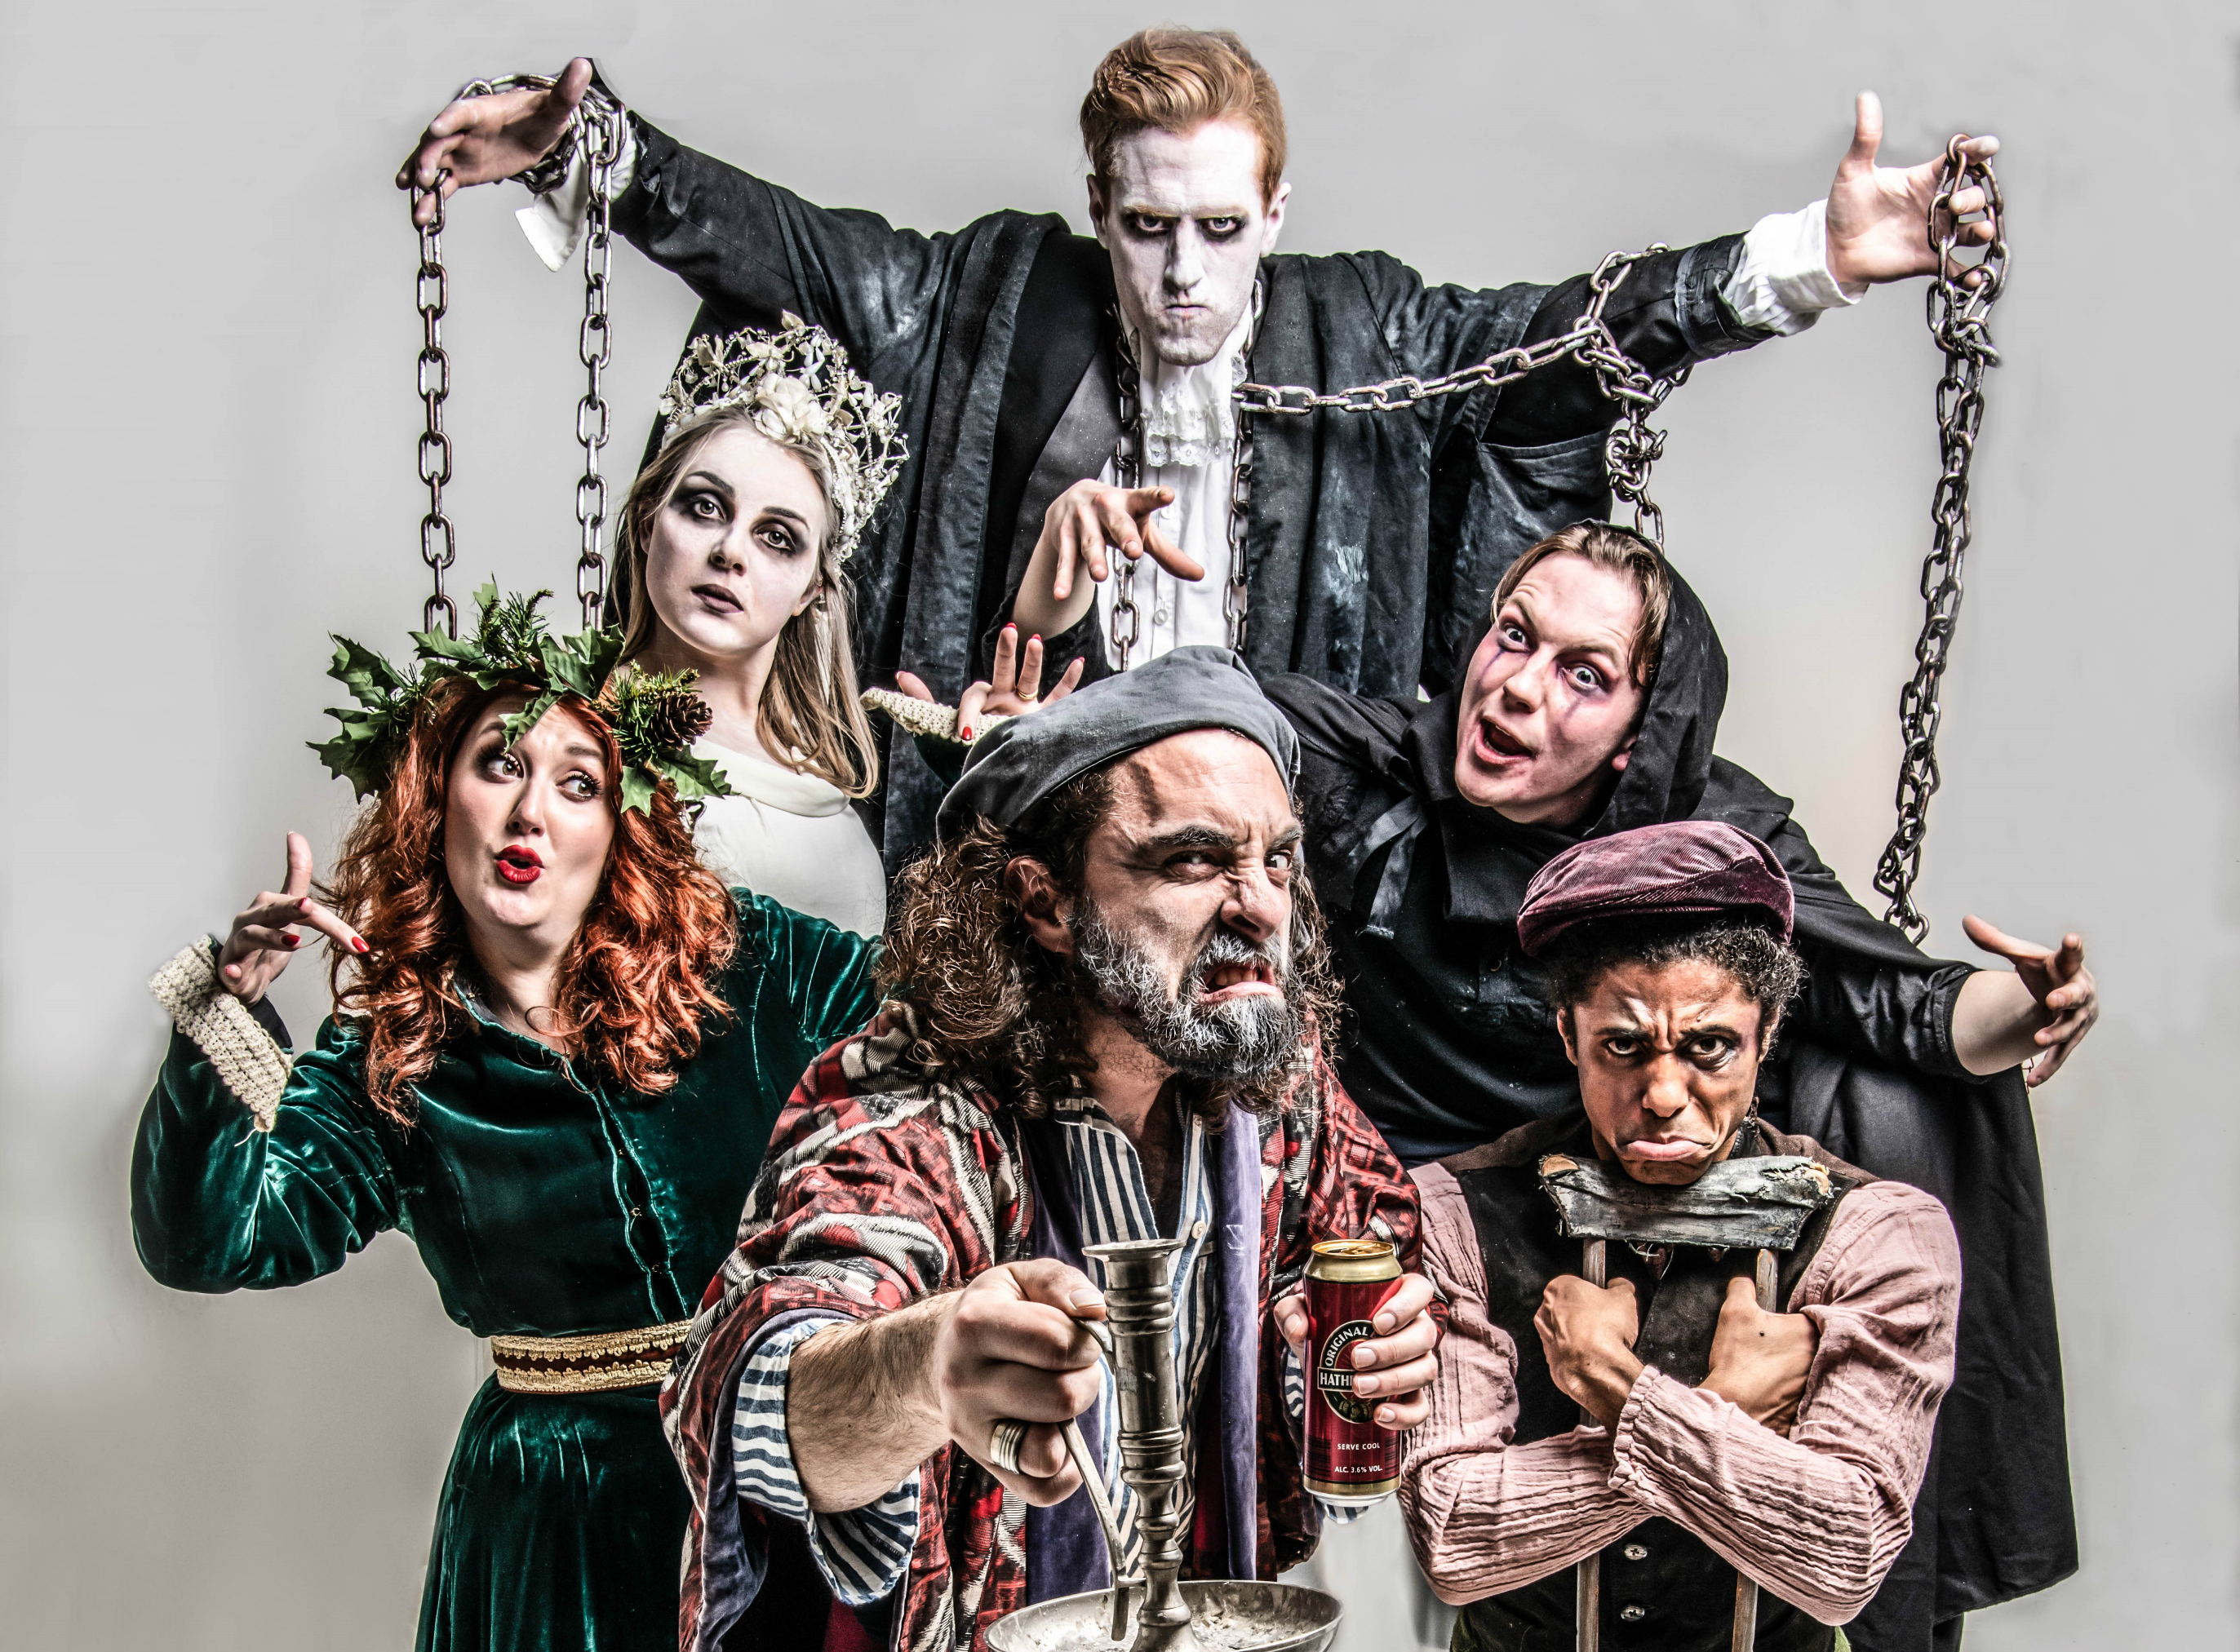 'Sh!t-Faced Showtime: A Pissedmas Carol' at Leicester Square Theatre